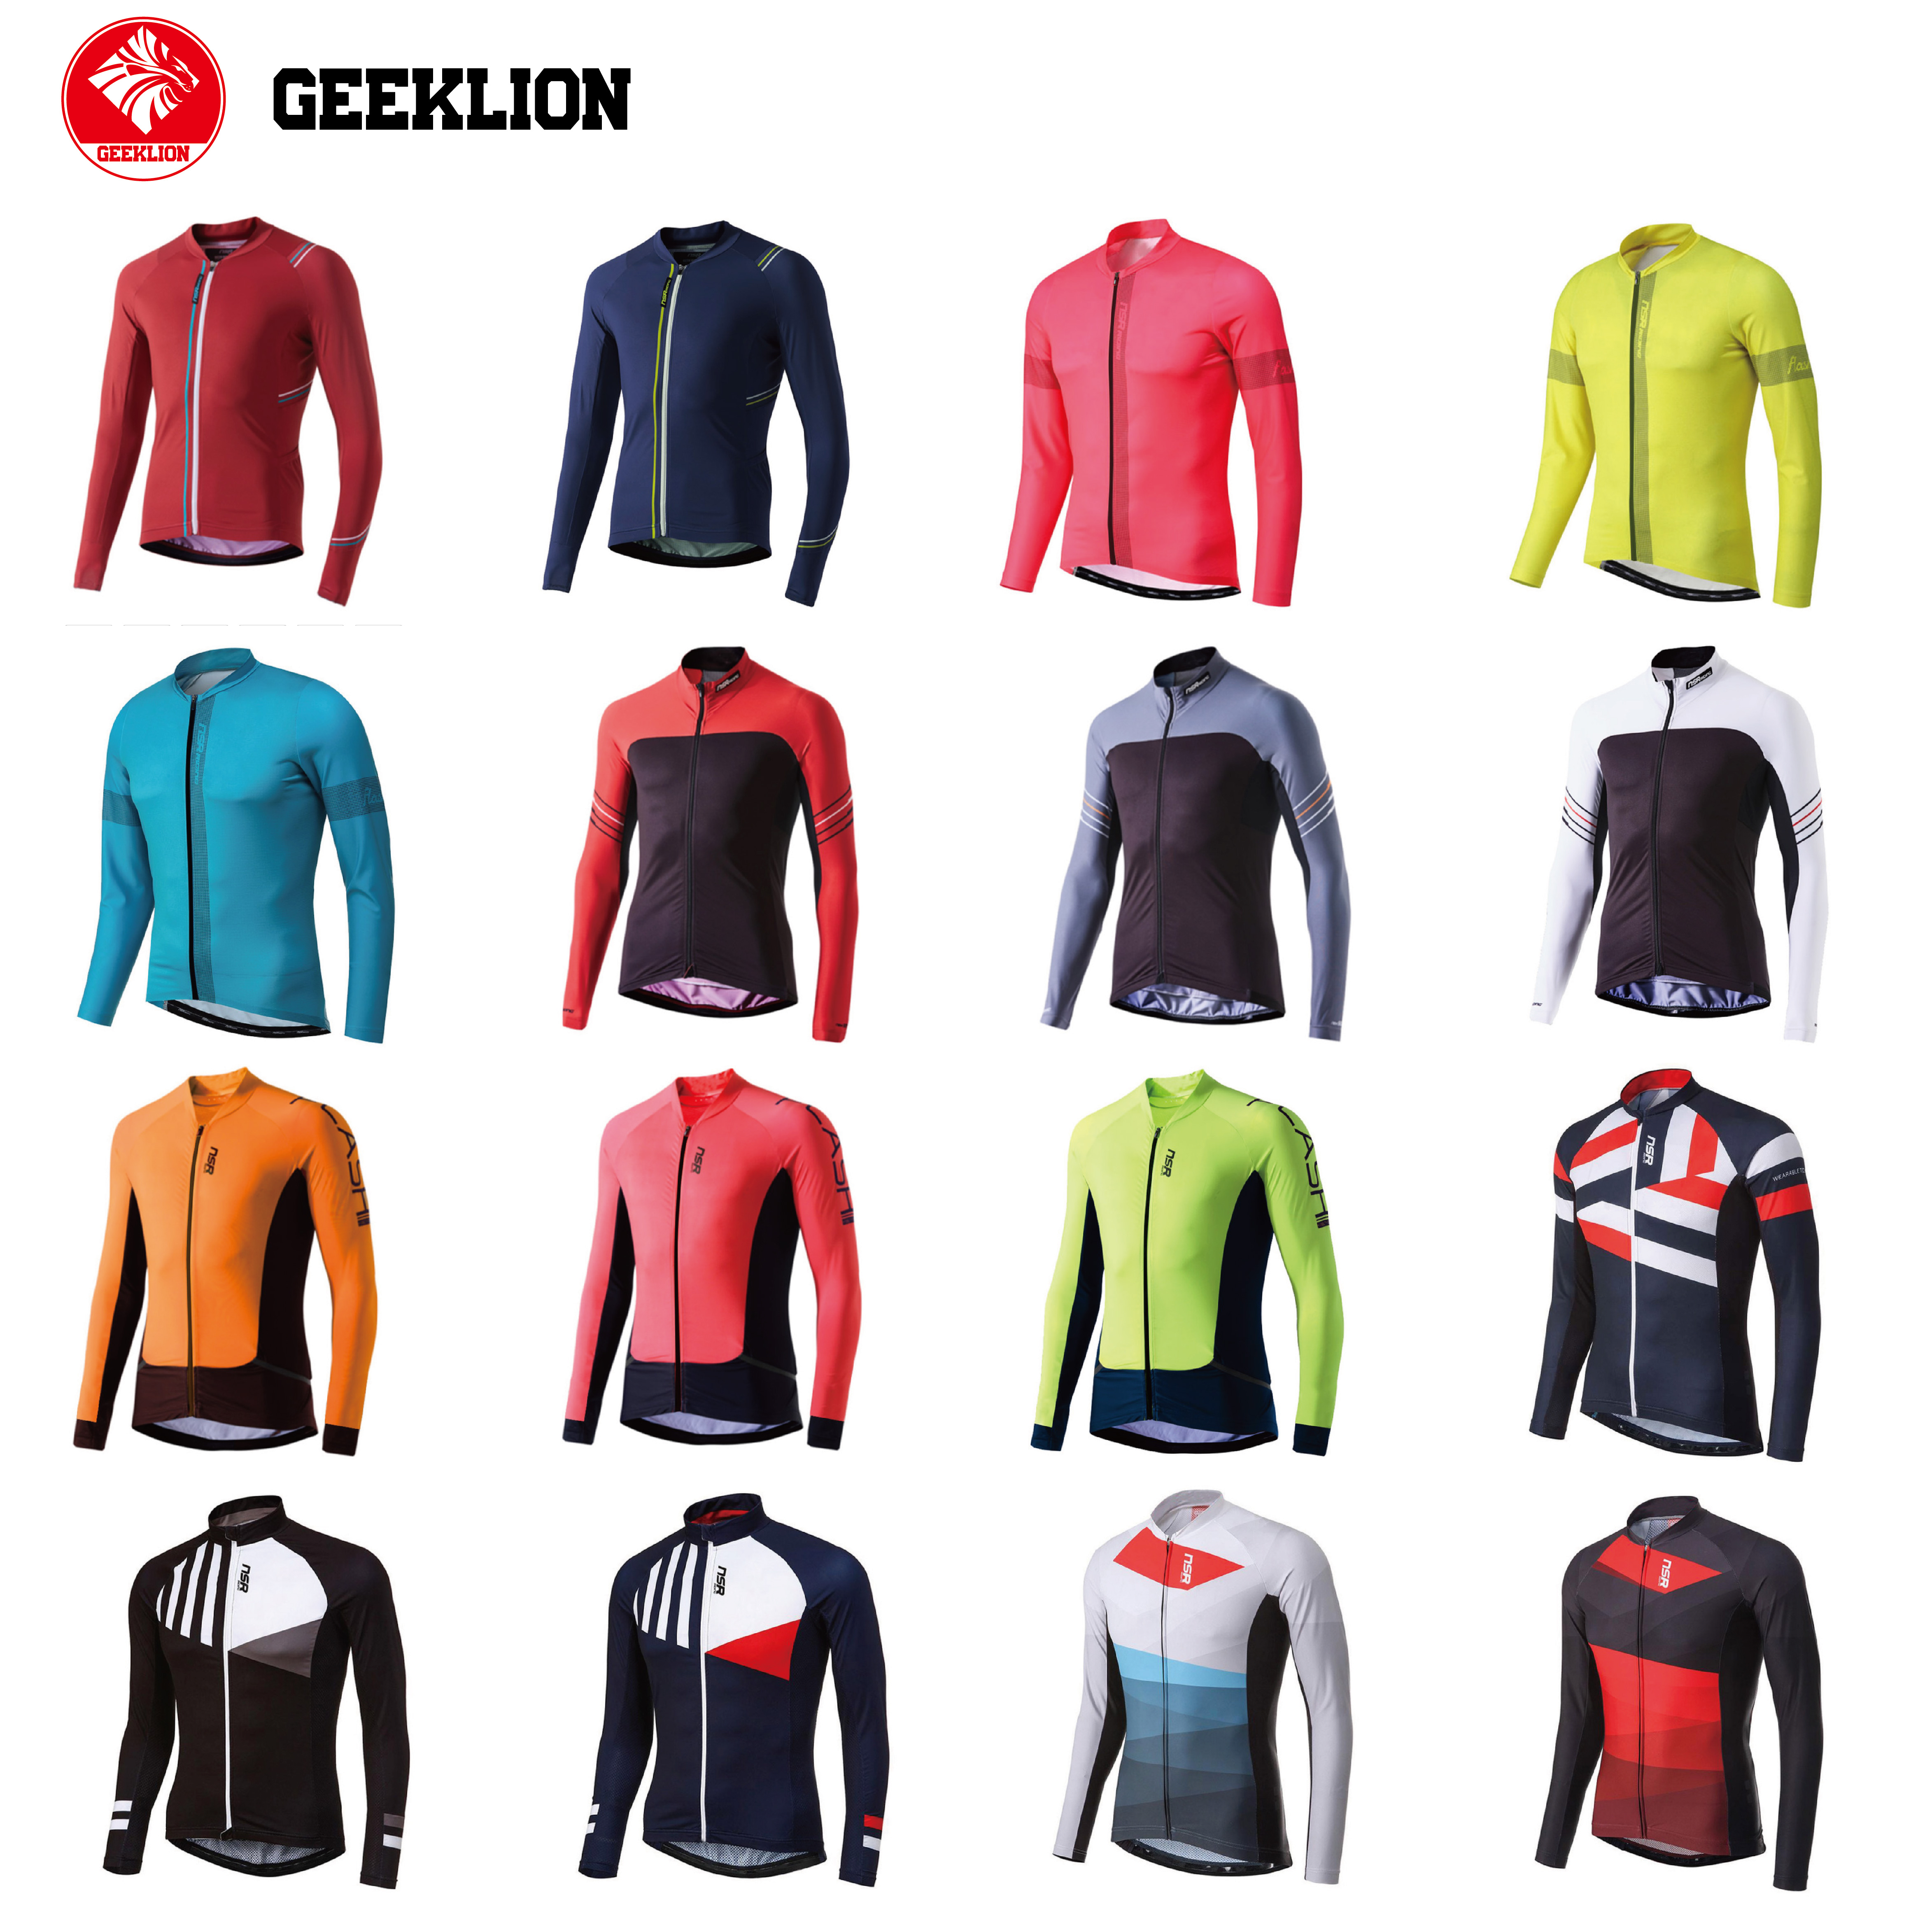 2021 Long Sleeves NSR Cycling jersey short sleeve jersey MTB road bike shirt maillot ciclismo roupa de ciclista Manga corta